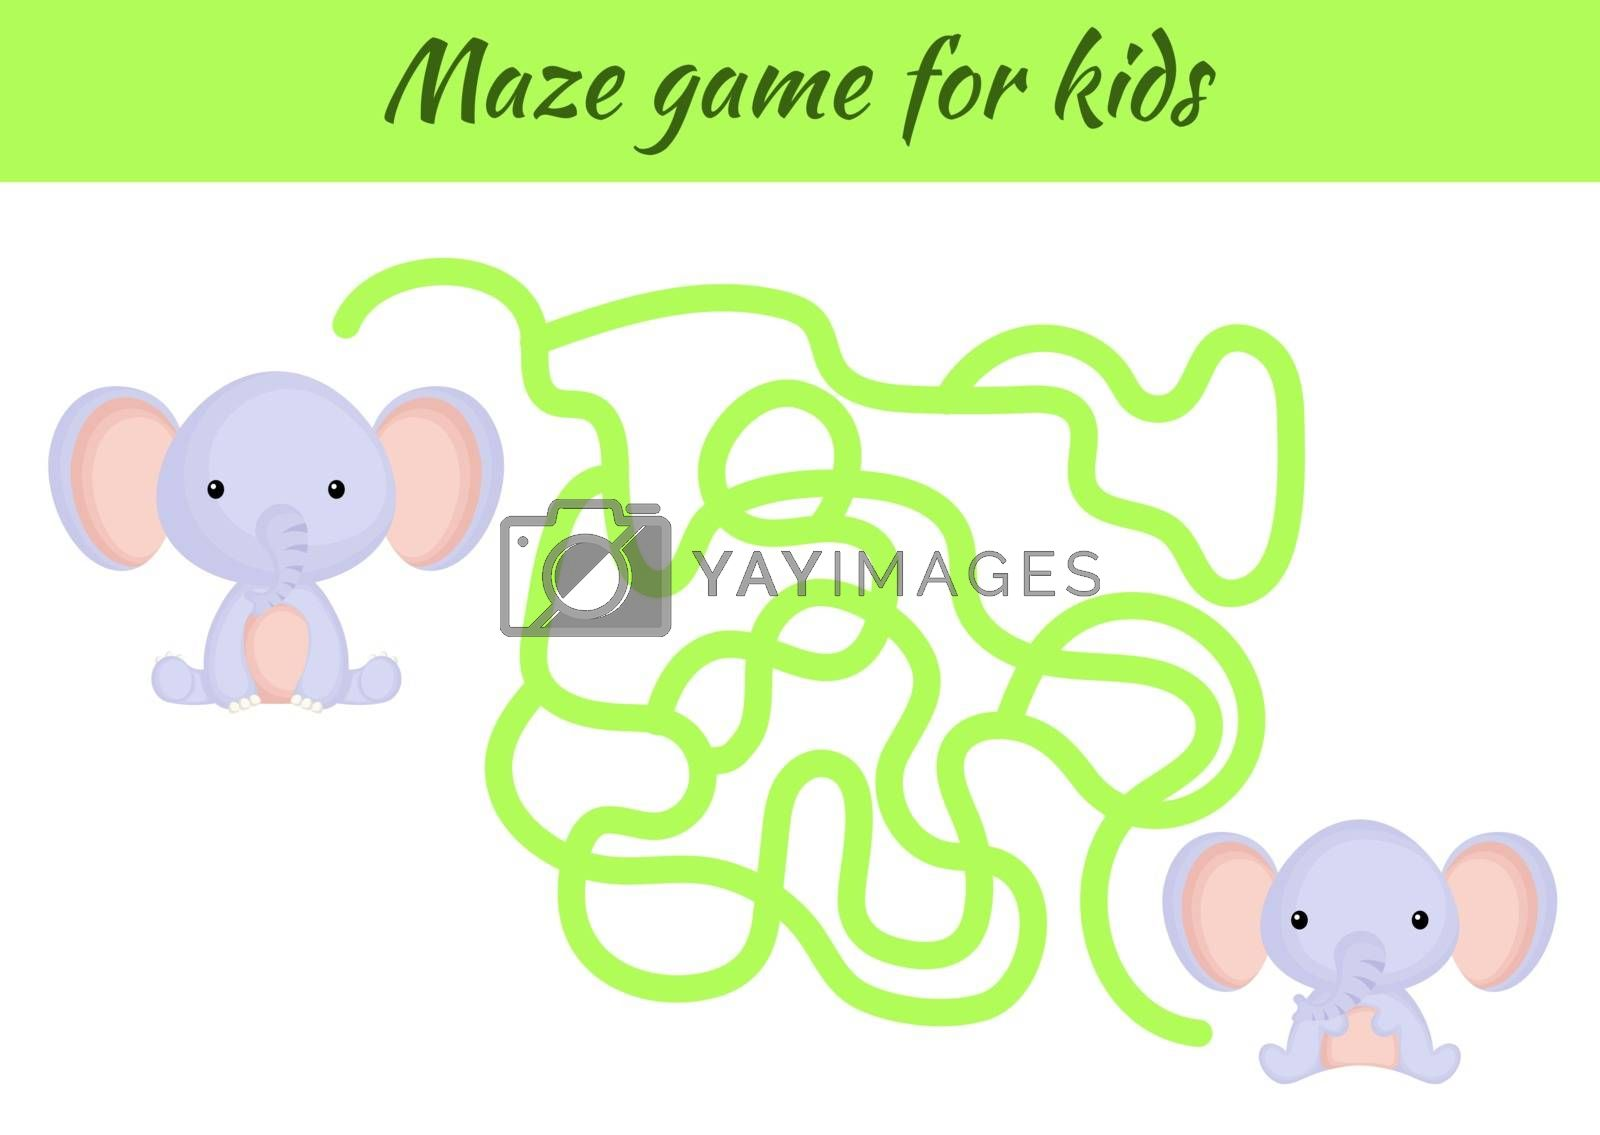 Funny maze or labyrinth game for kids. Help mother find path to baby. Education developing worksheet. Activity page. Cartoon elephant characters. Riddle for preschool. Color vector stock illustration.